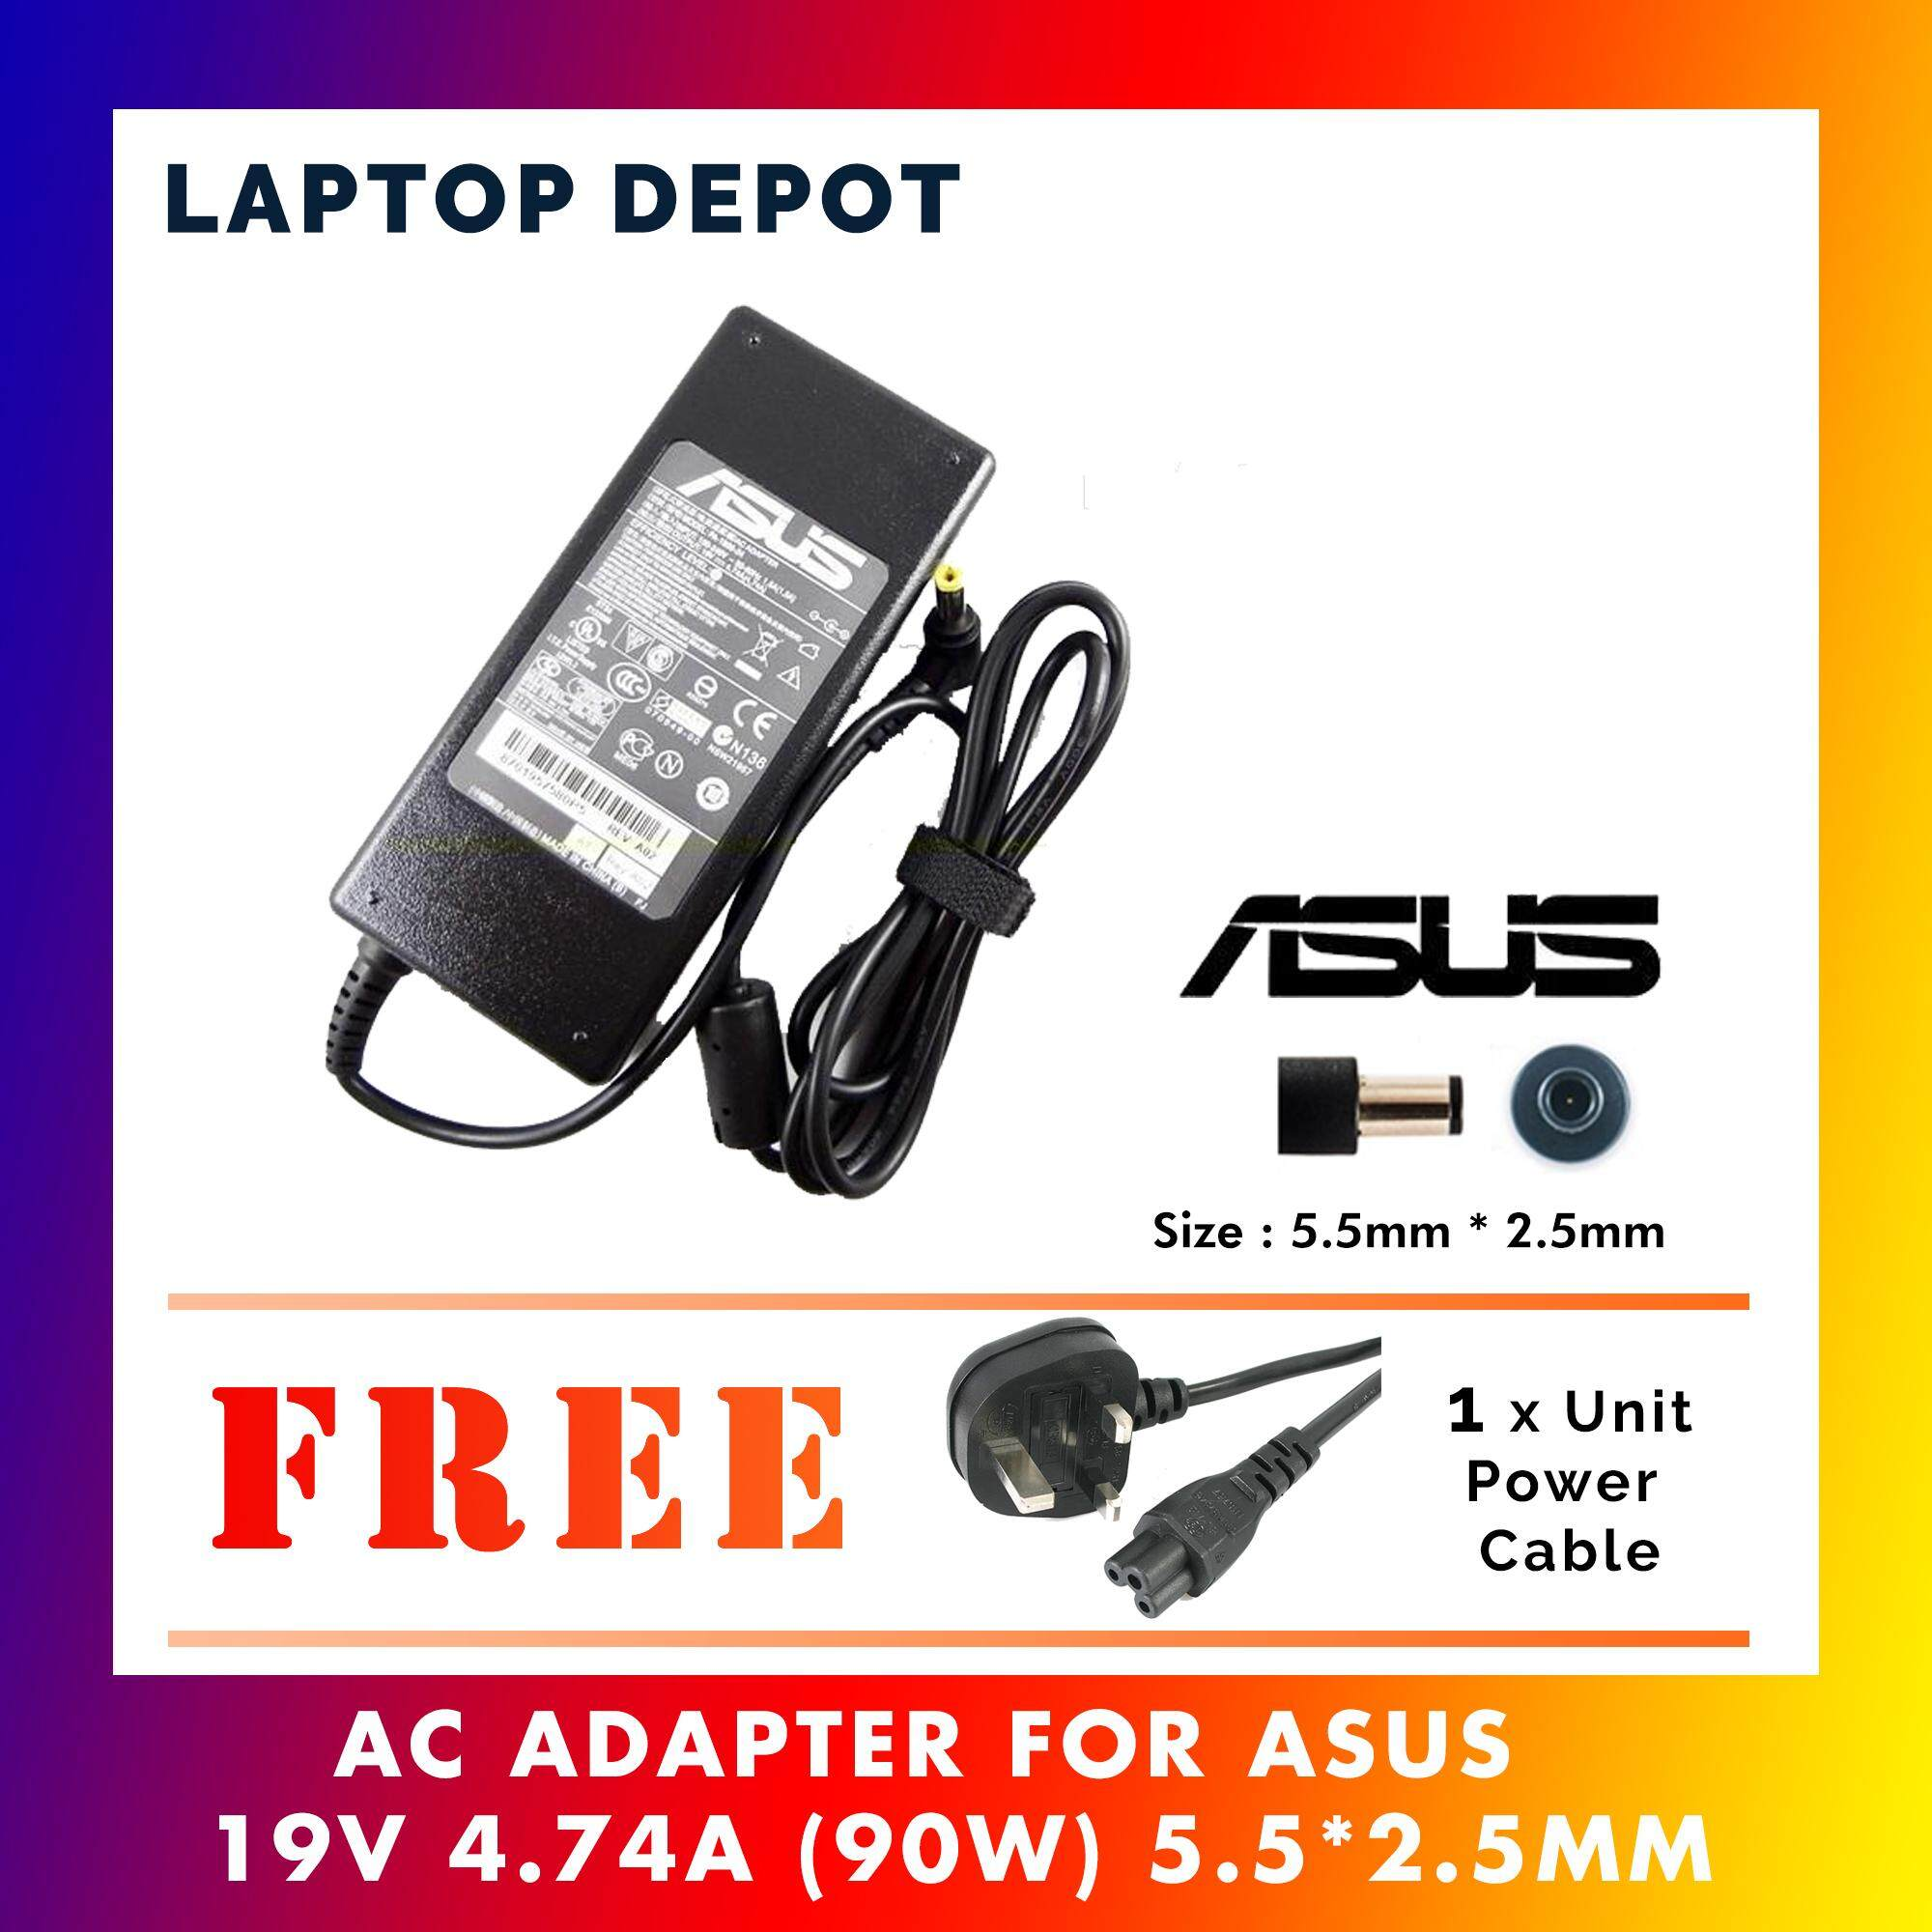 ASUS X45C USB CHARGER DOWNLOAD DRIVERS